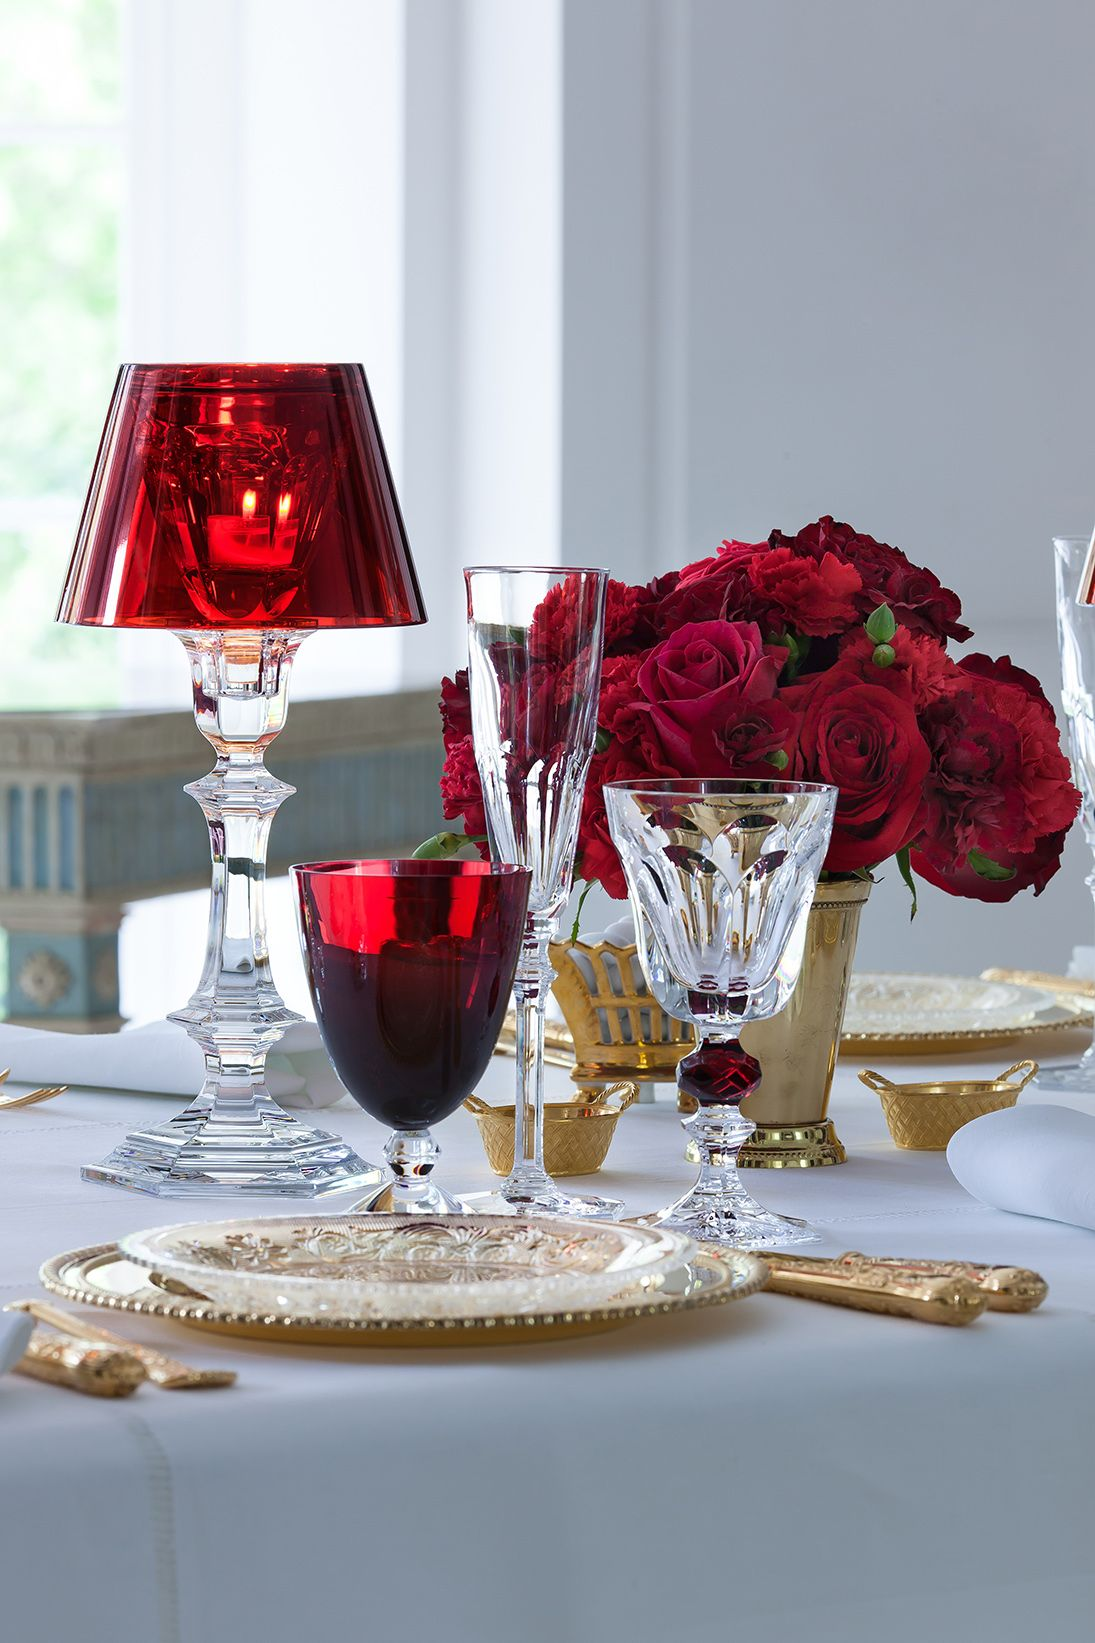 Andrewertheretassocies Romantic Table Setting Beautiful Table Settings Glass